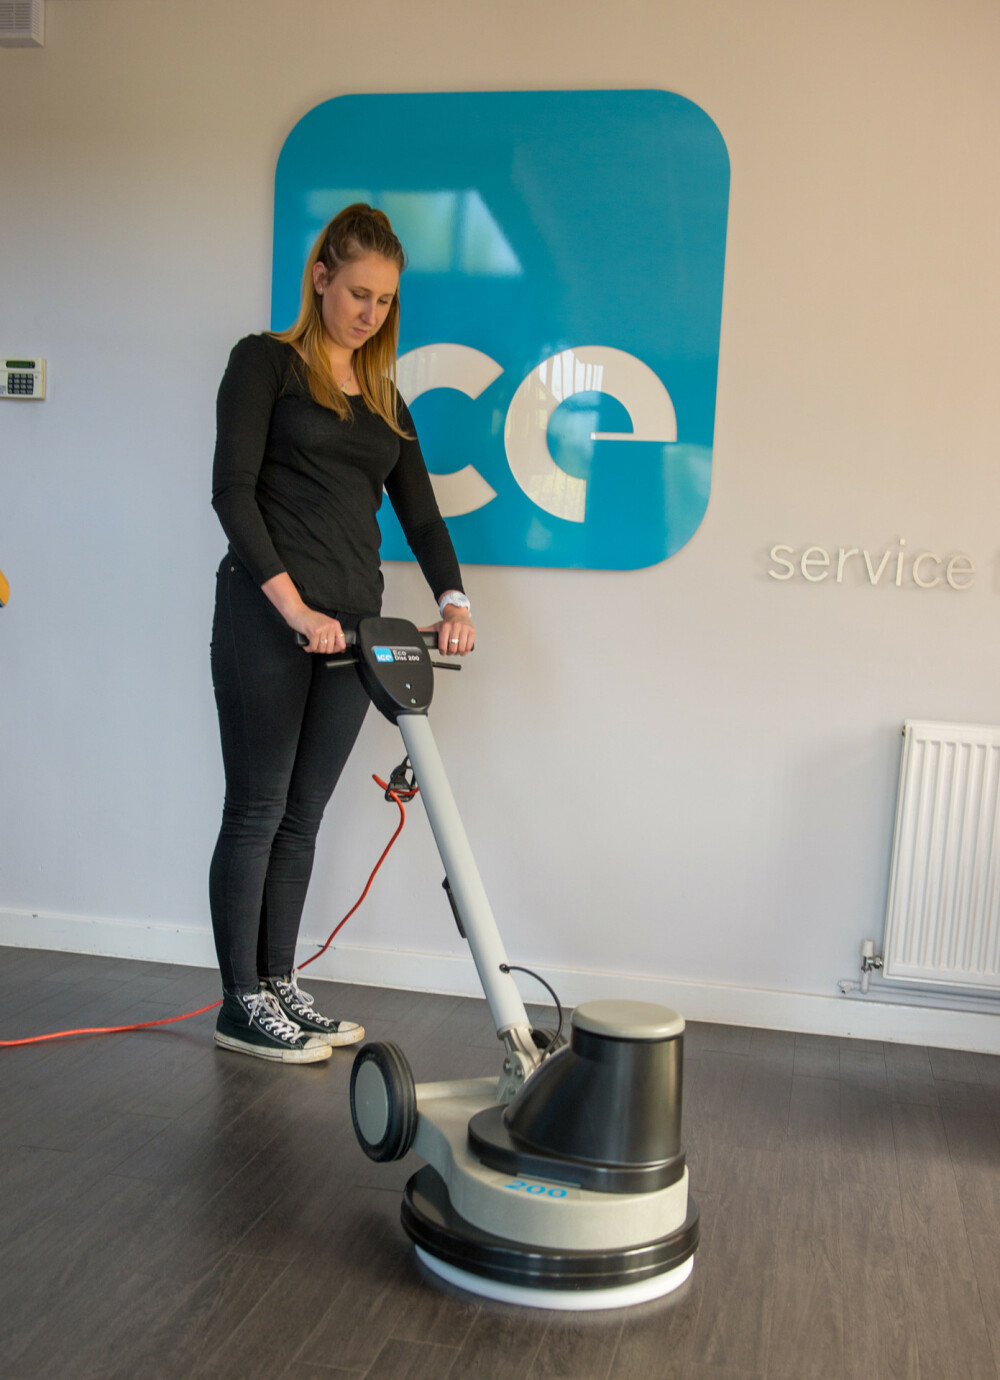 ICE Cleaning Equipment